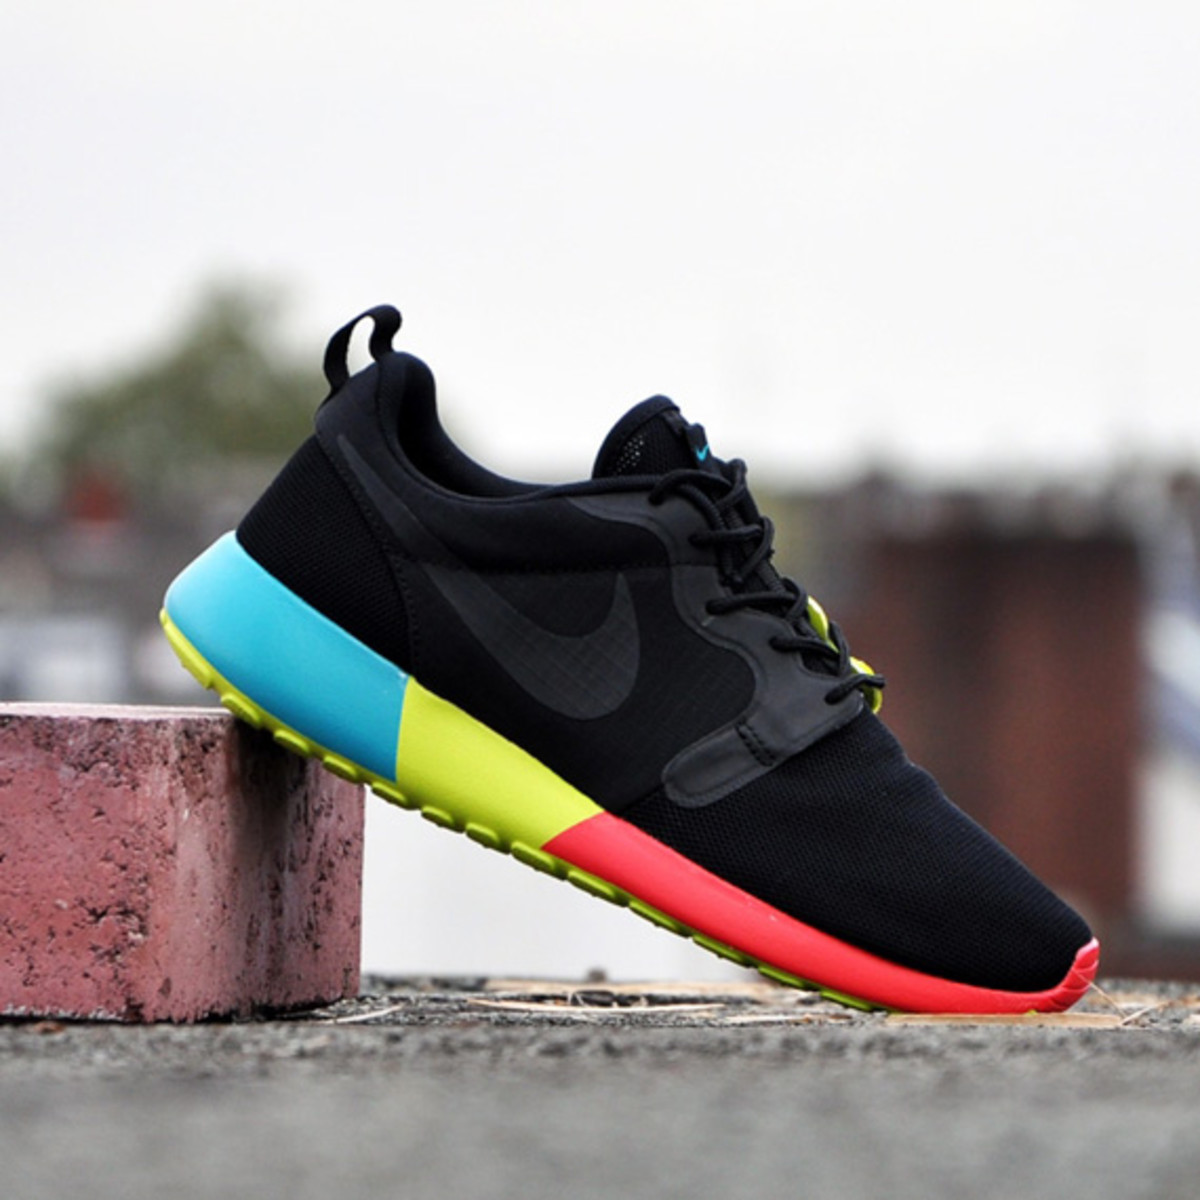 adec9aa1aff2 Officially designate with a Black Black-Turbo Green-Venom Green colorway